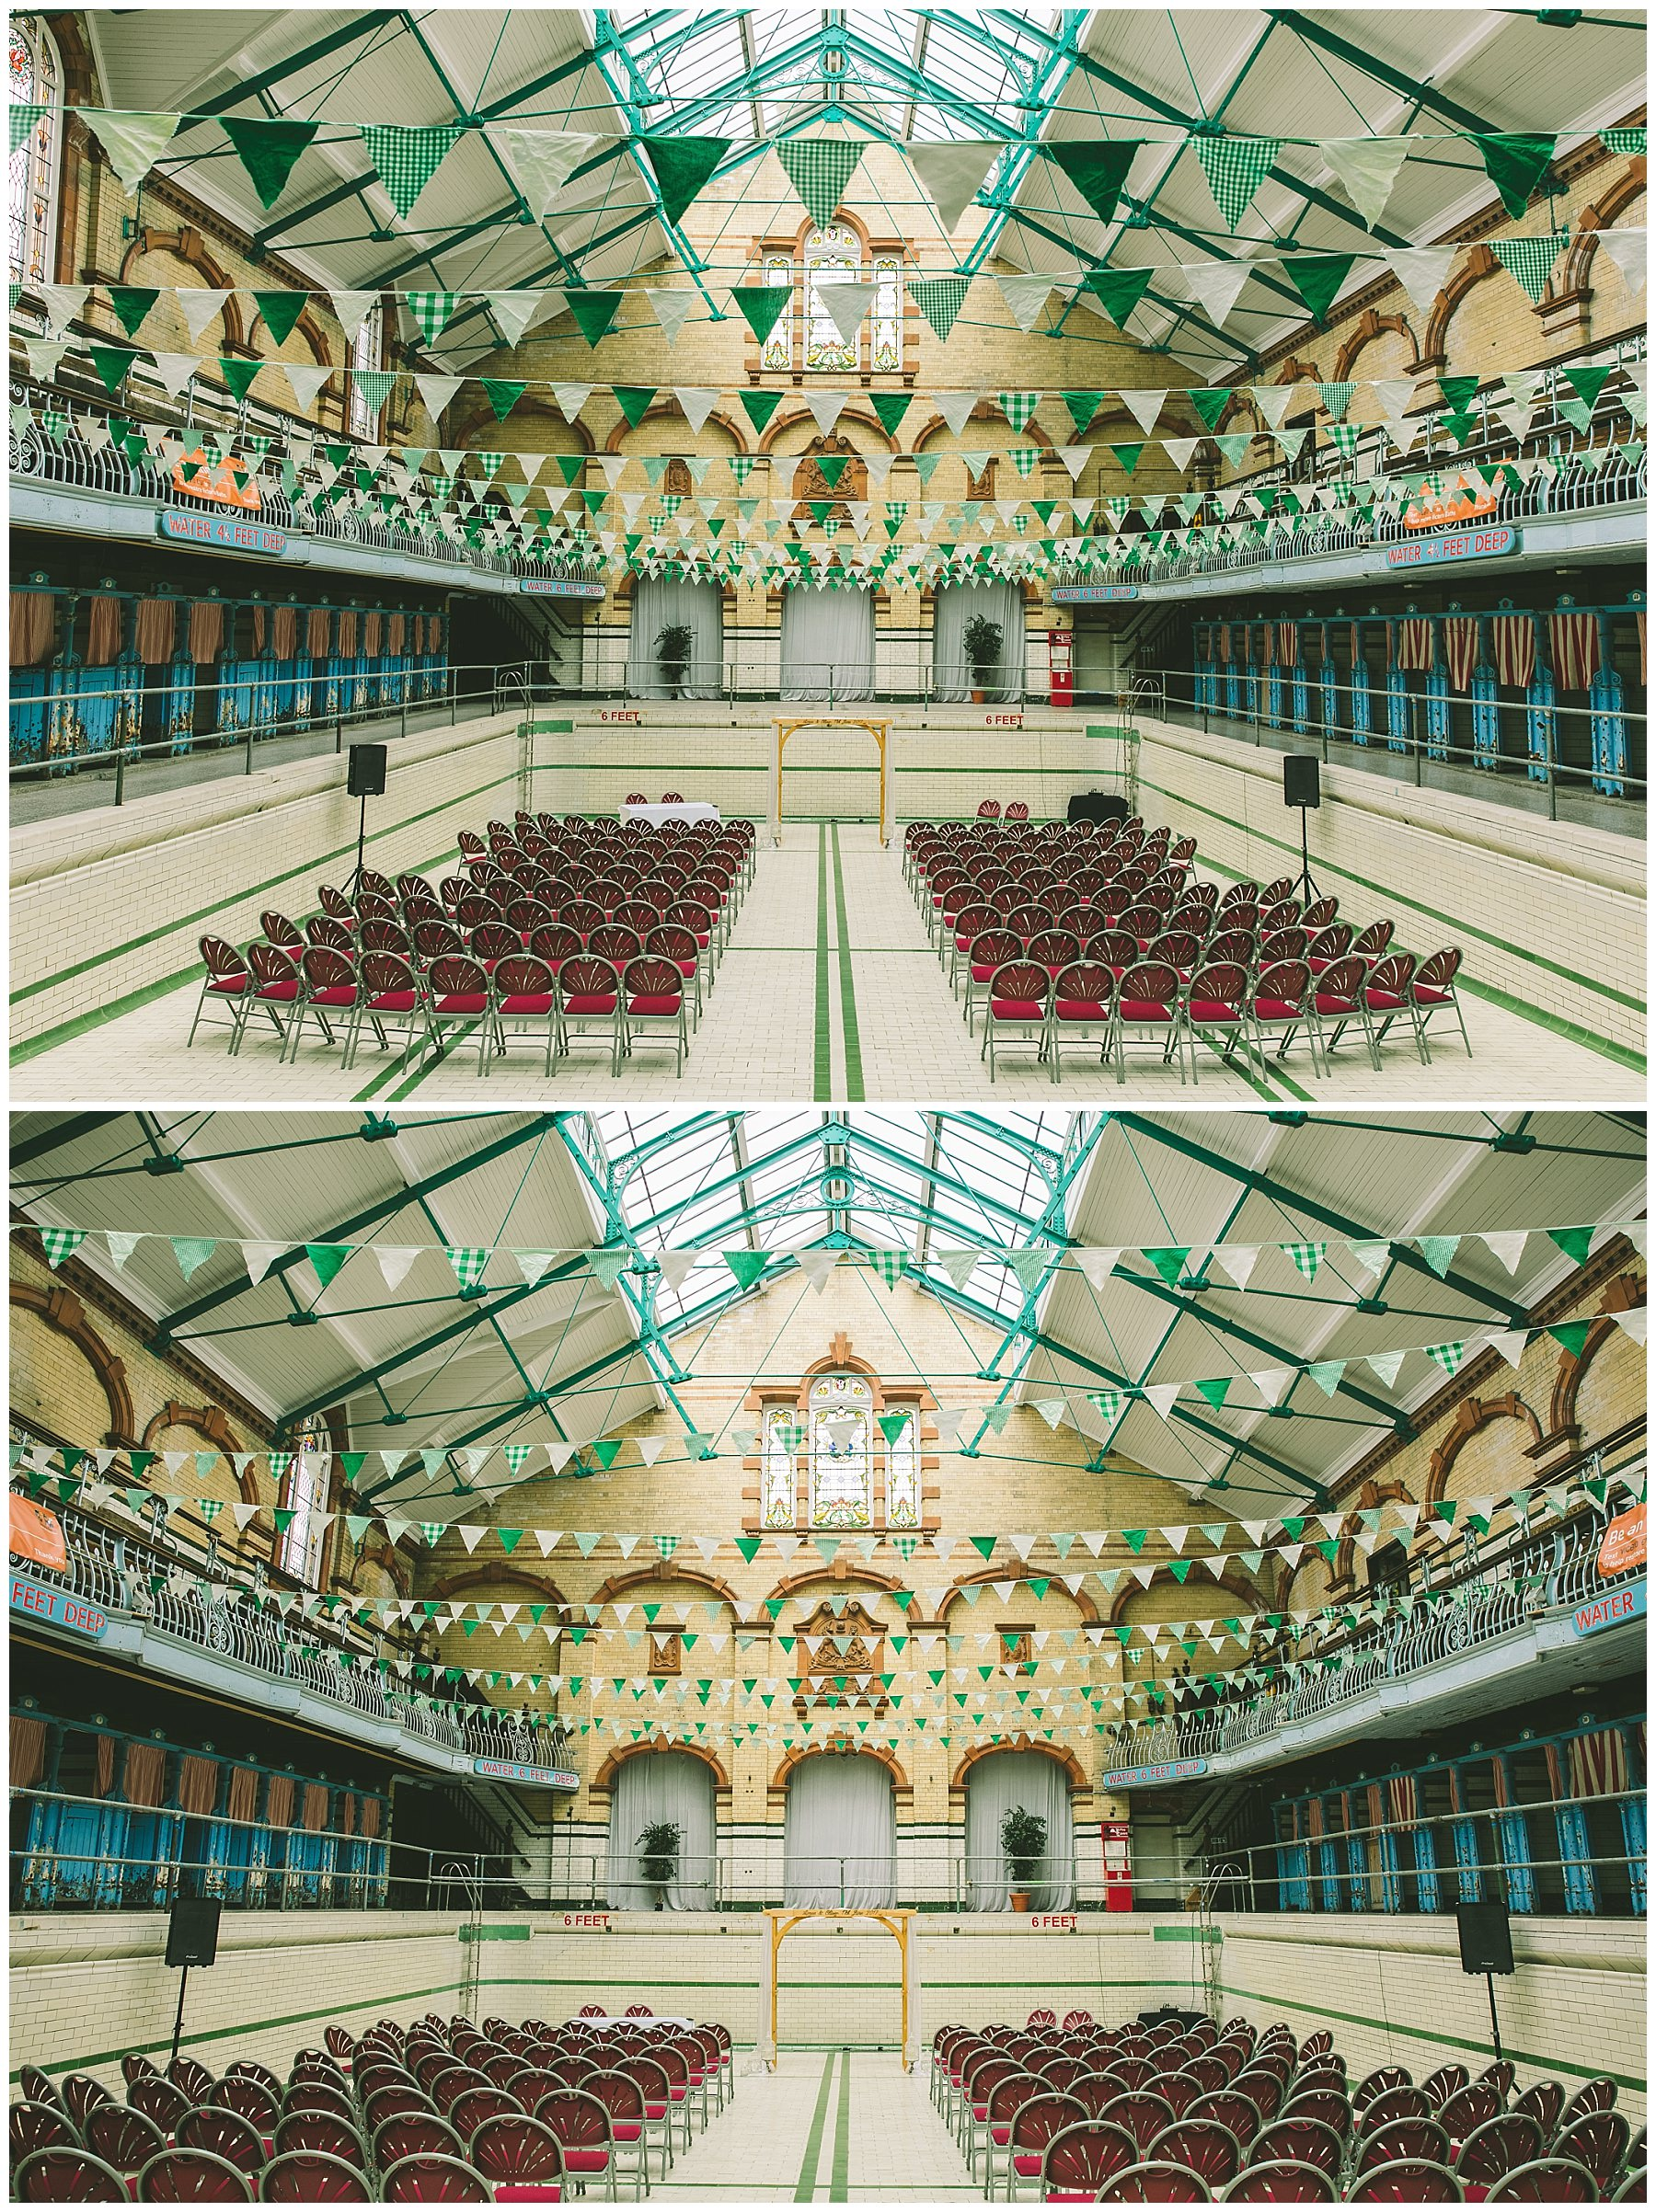 Ceremony set up in the pool at Victoria Baths